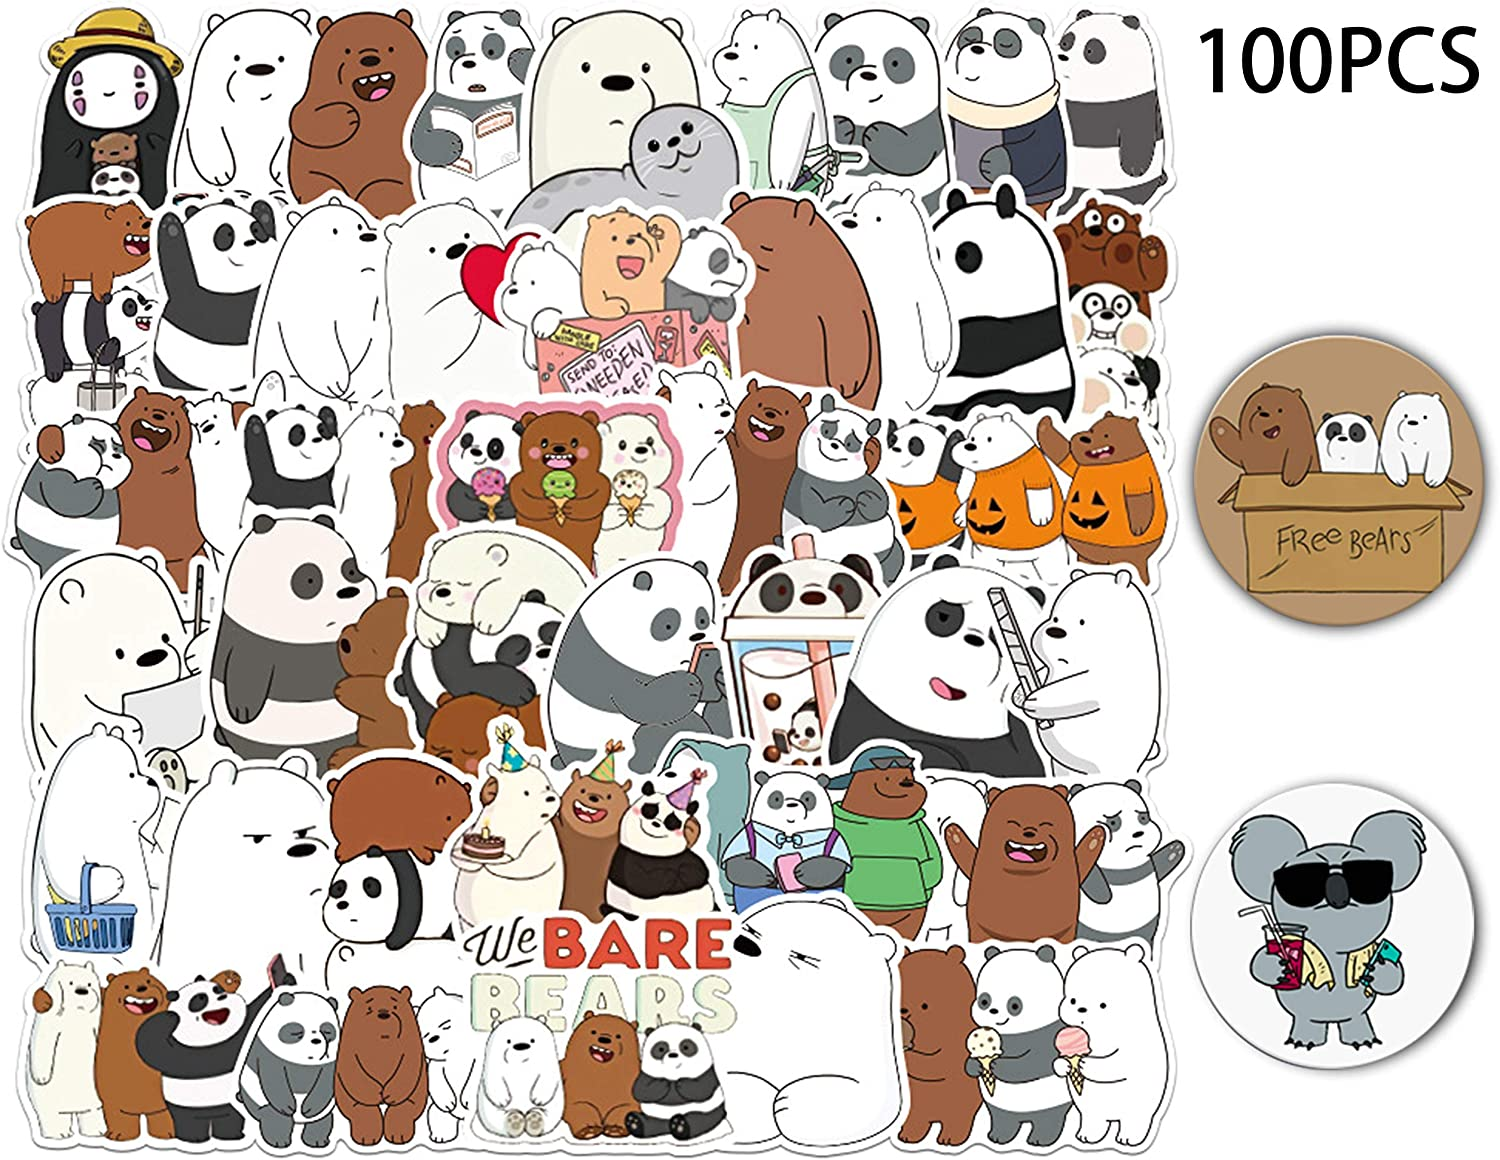 Kilmila We Bare Bears Stickers 100Pcs(with 2 Pack of Bear Buttons Badges Pins ).Gifts Merch We Bare Bears Party Supplies Cute Sticker for Laptop Graffiti